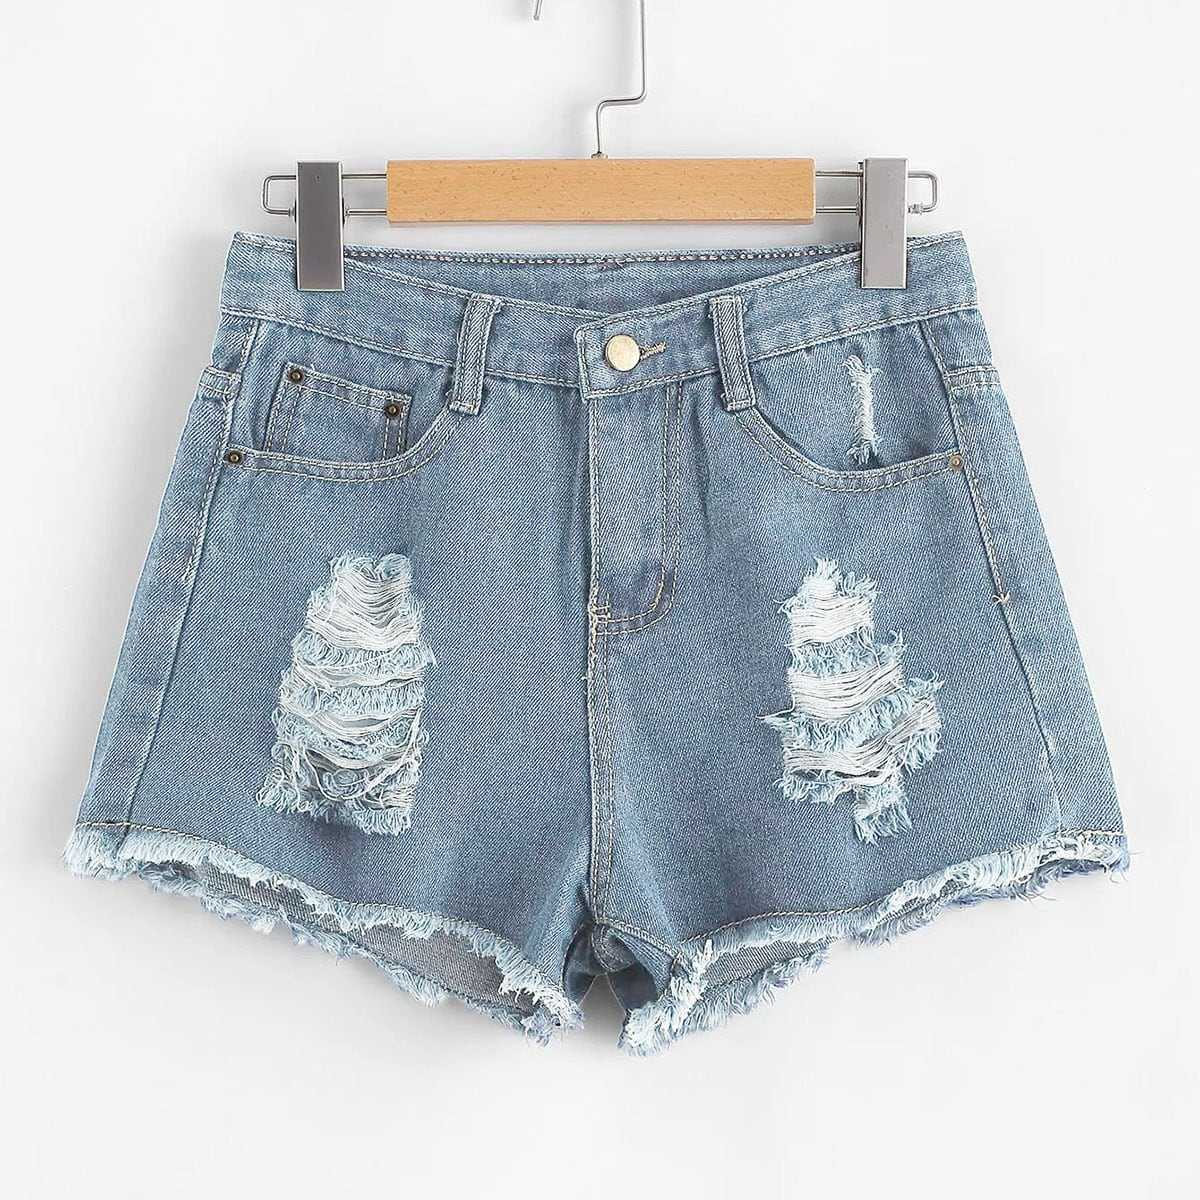 Ripped Raw Hem Denim Shorts in Blue by ROMWE on GOOFASH